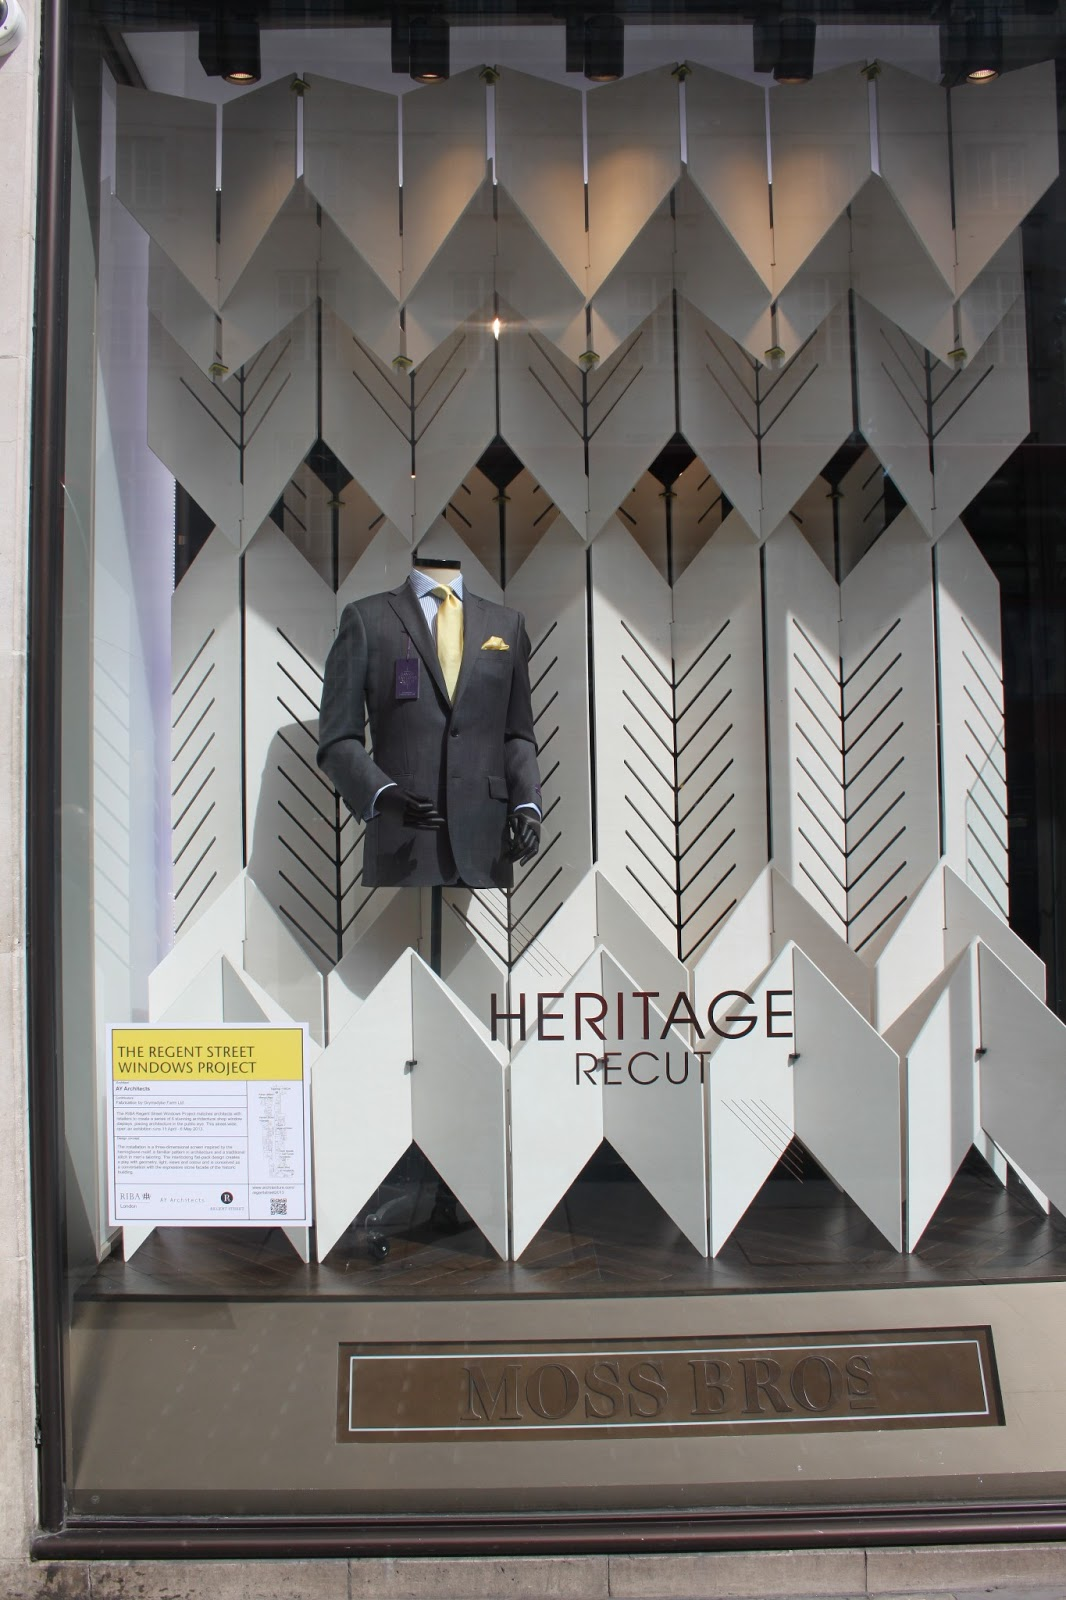 The regent street windows project 2012 - Moss Bros I Love The Understated Look Of The This Display Which Emulates The Suits Of The Brand In That They Are Sharp Clean Cut And Incurs Great Detail